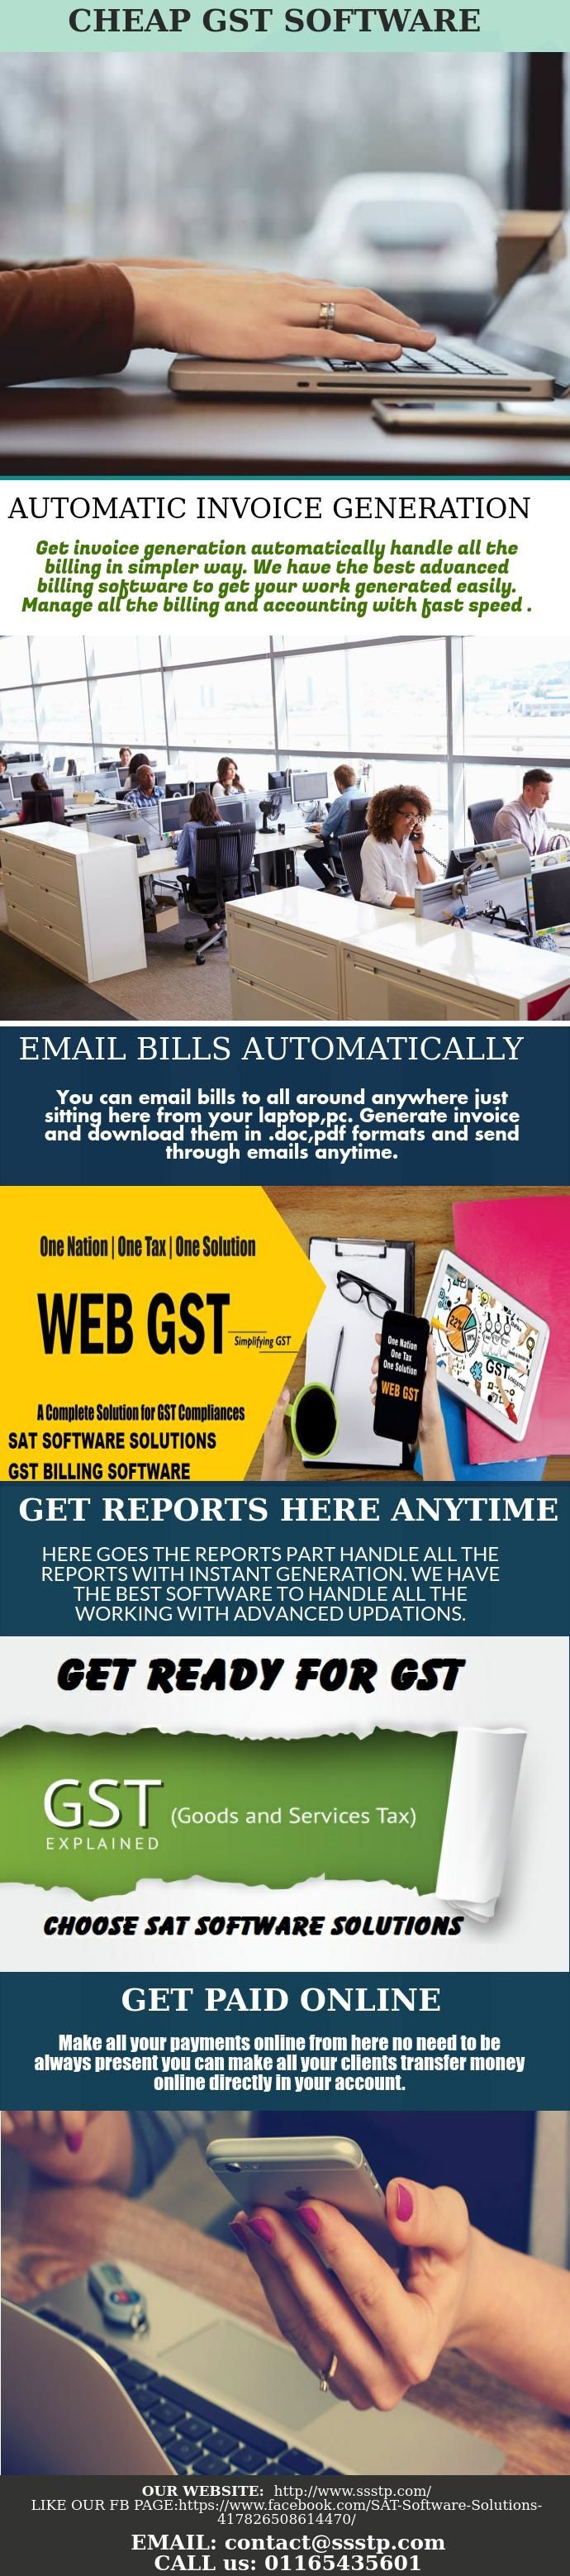 44 best GST BILLING SOFTWARE images on Pinterest